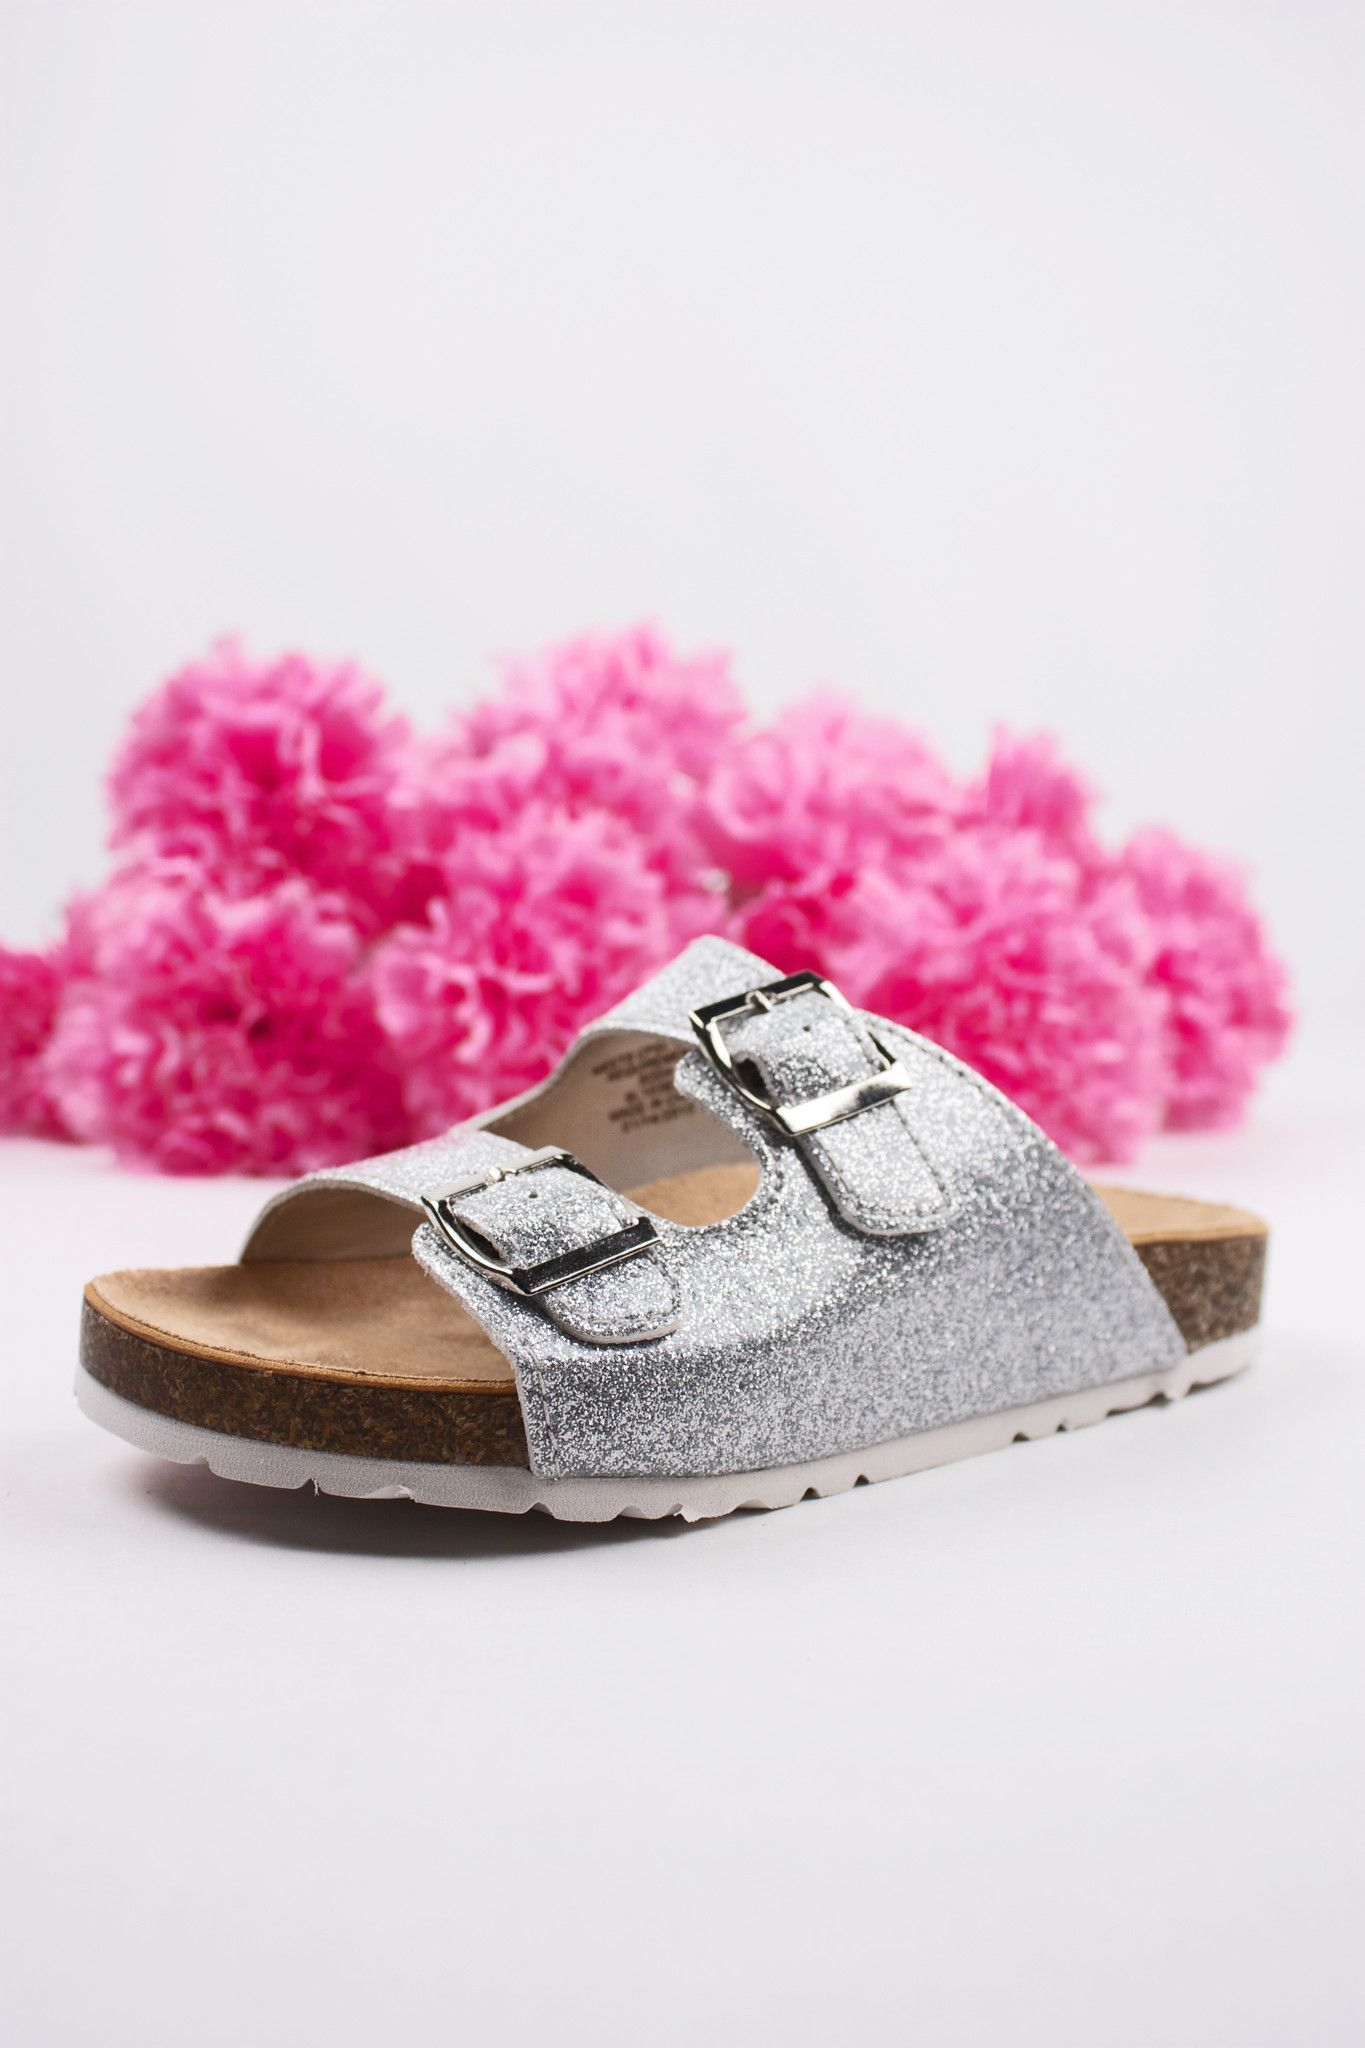 good discount shop outlet store sale Pin on Product photography & styling